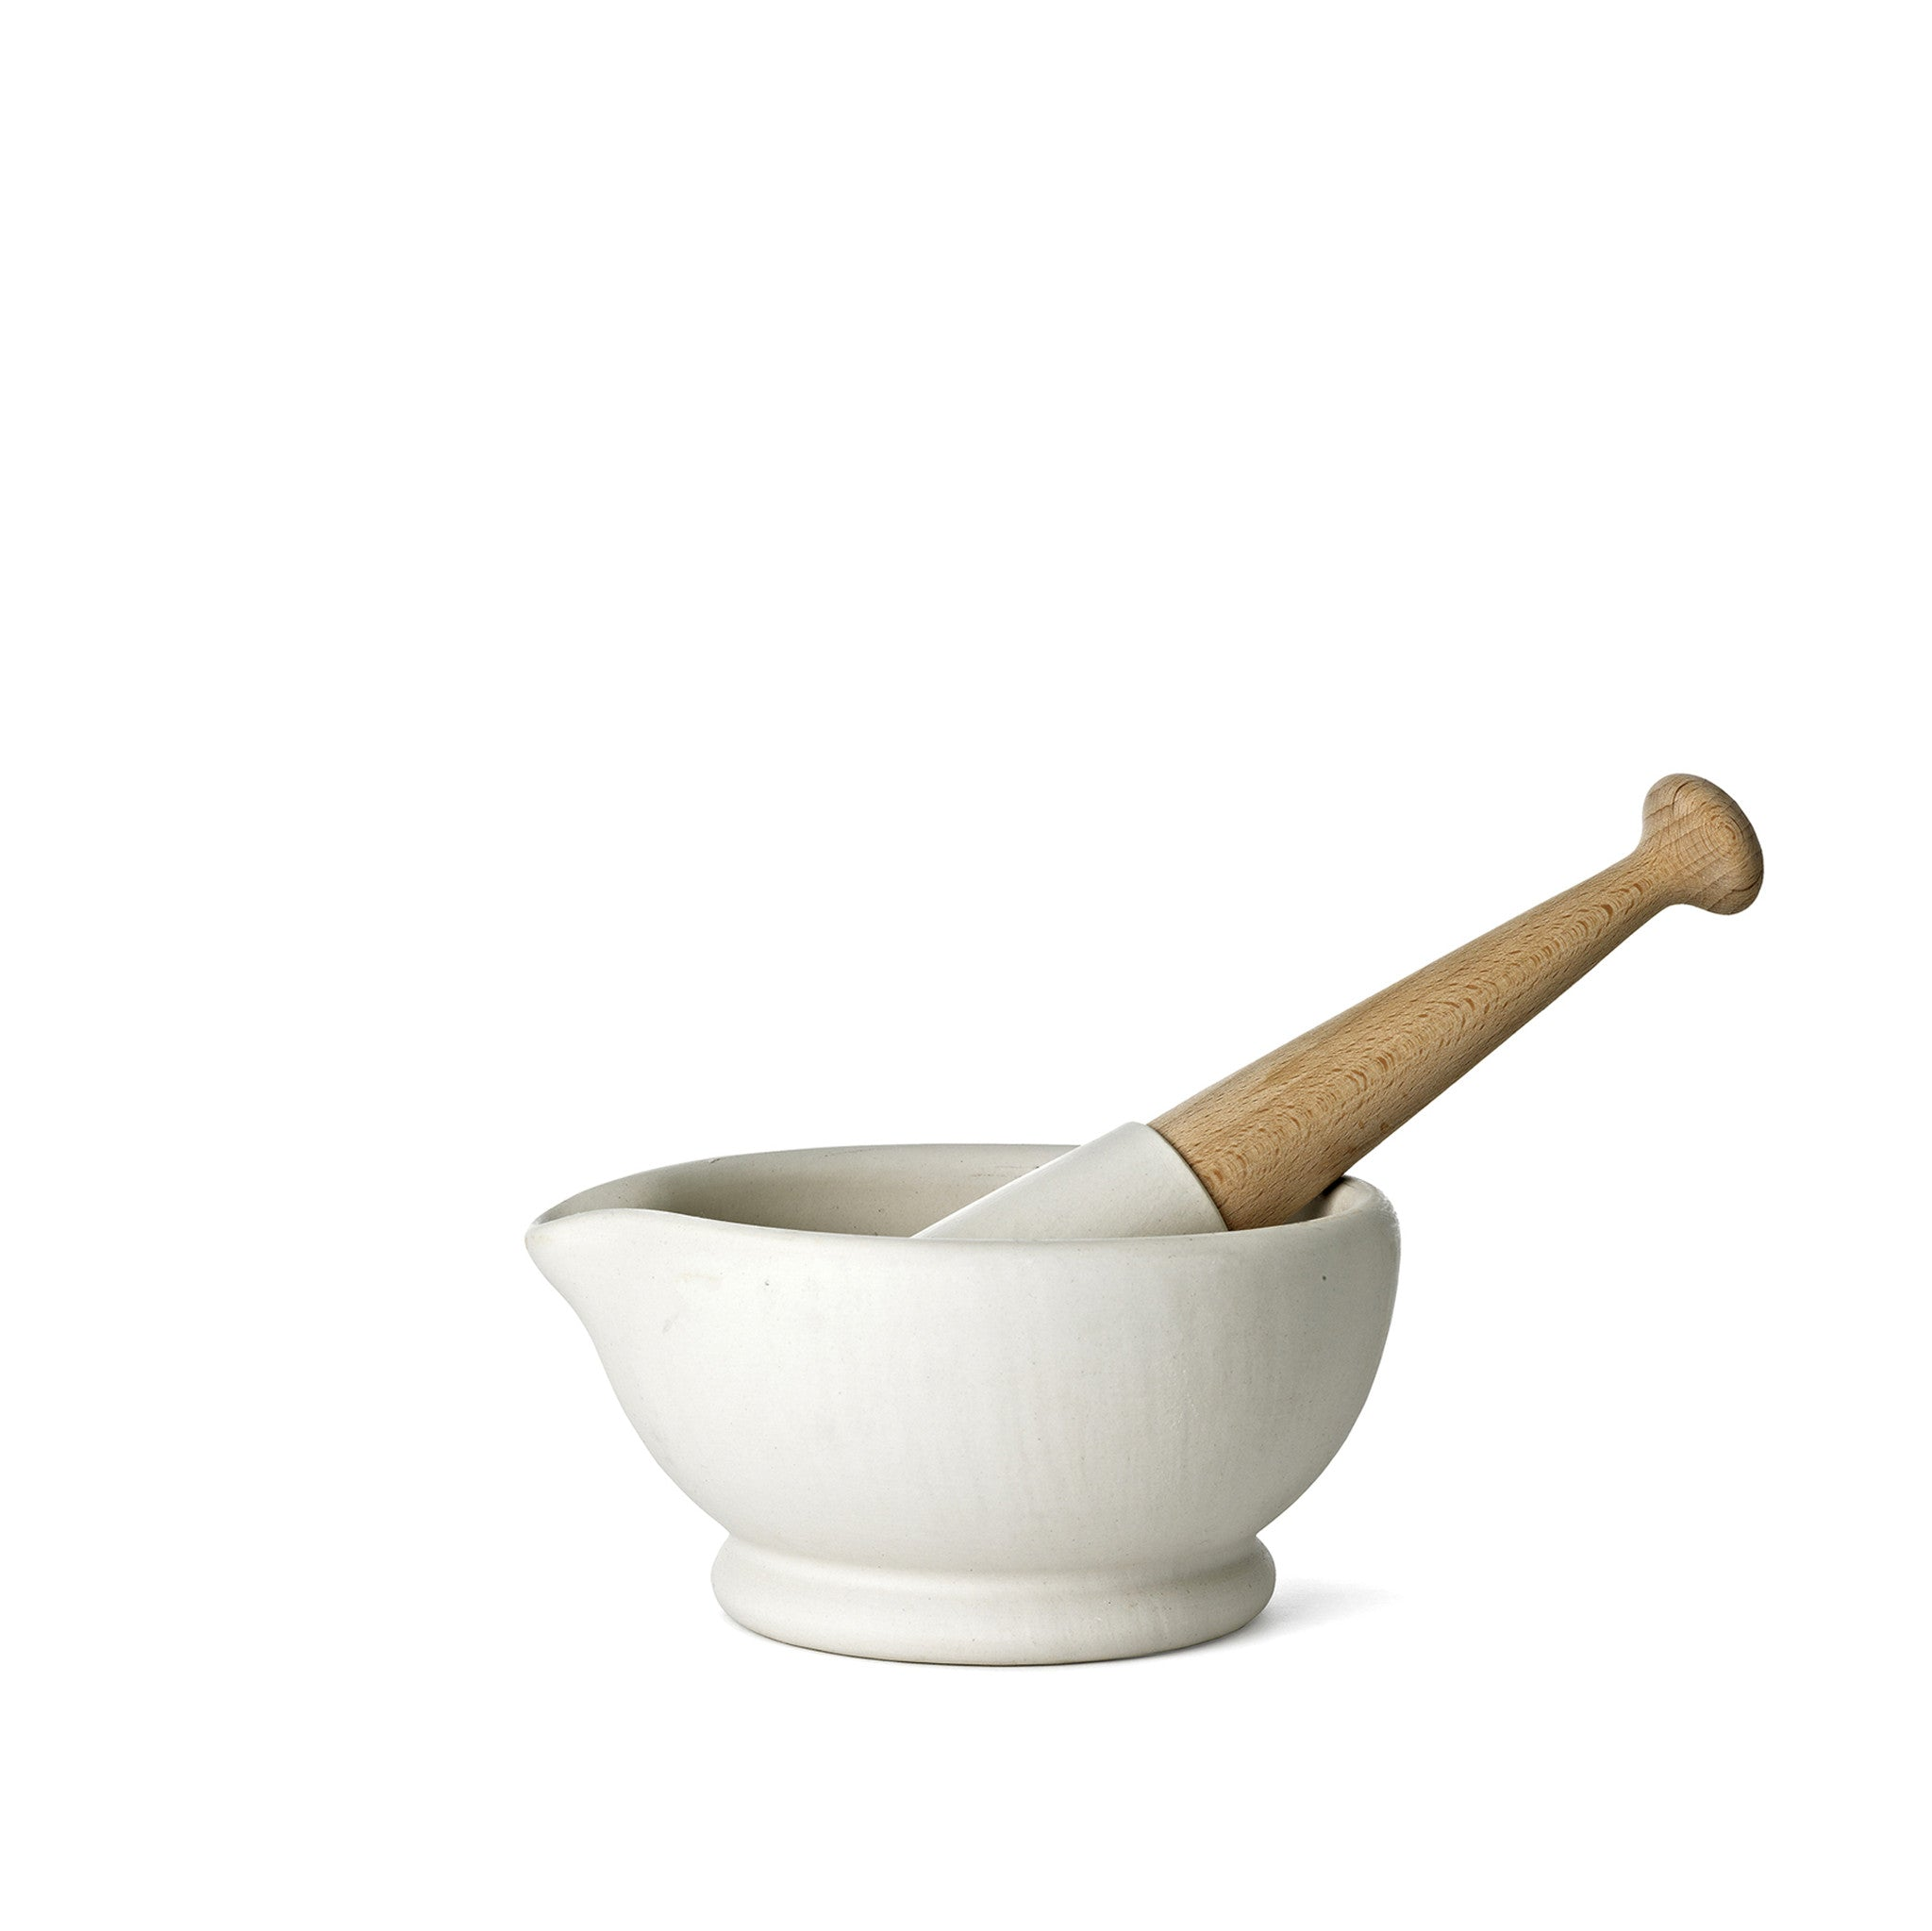 Porcelain Pestle & Mortar, Medium